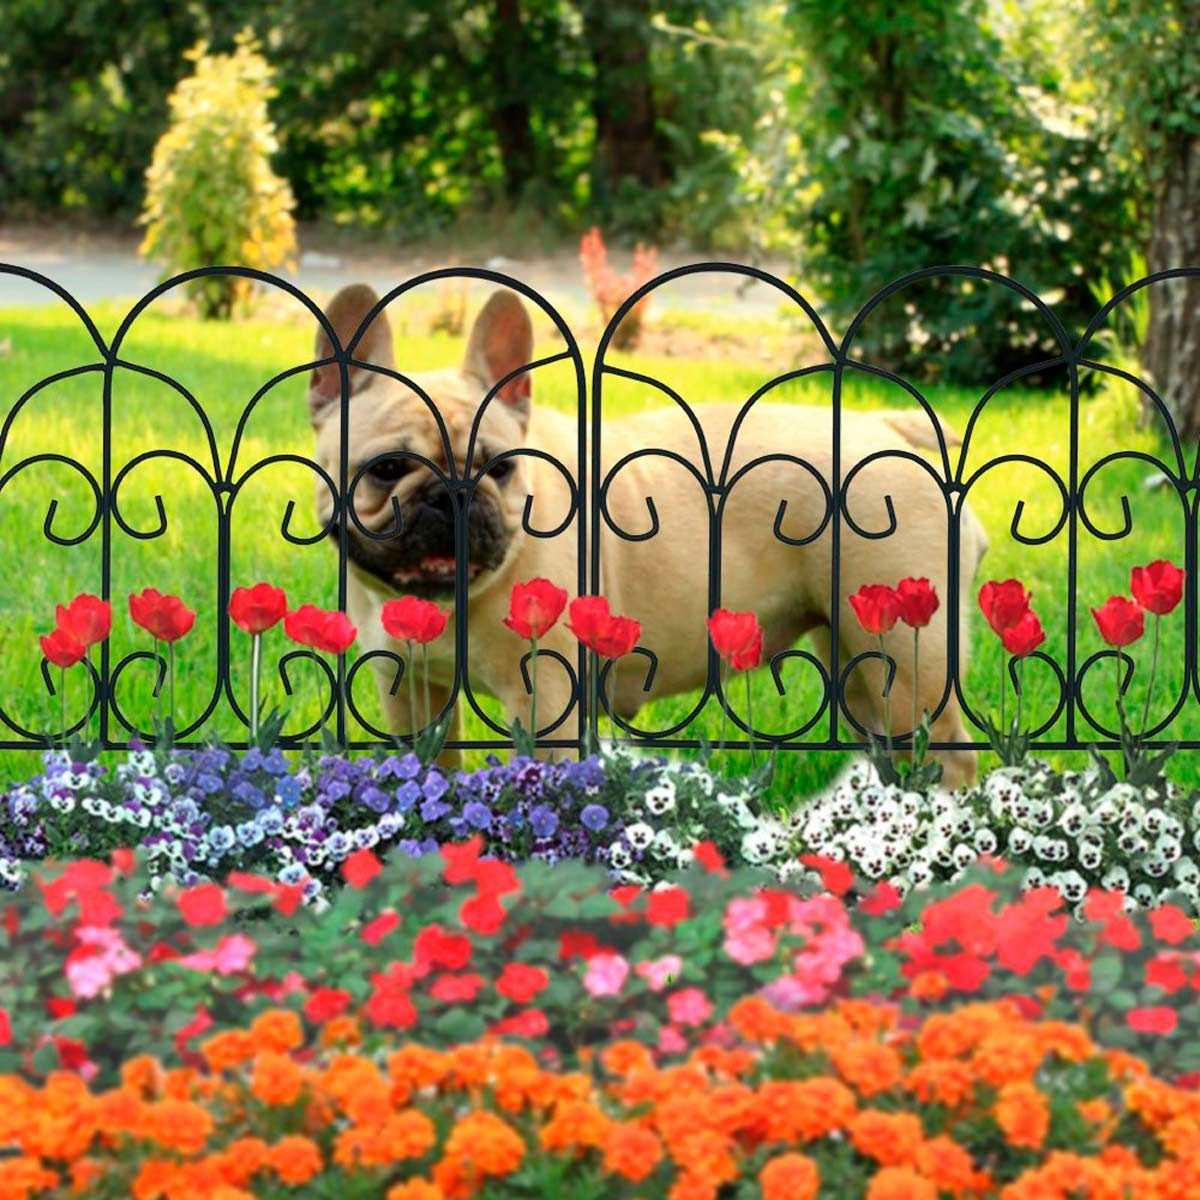 how to keep a dog from digging in flower beds